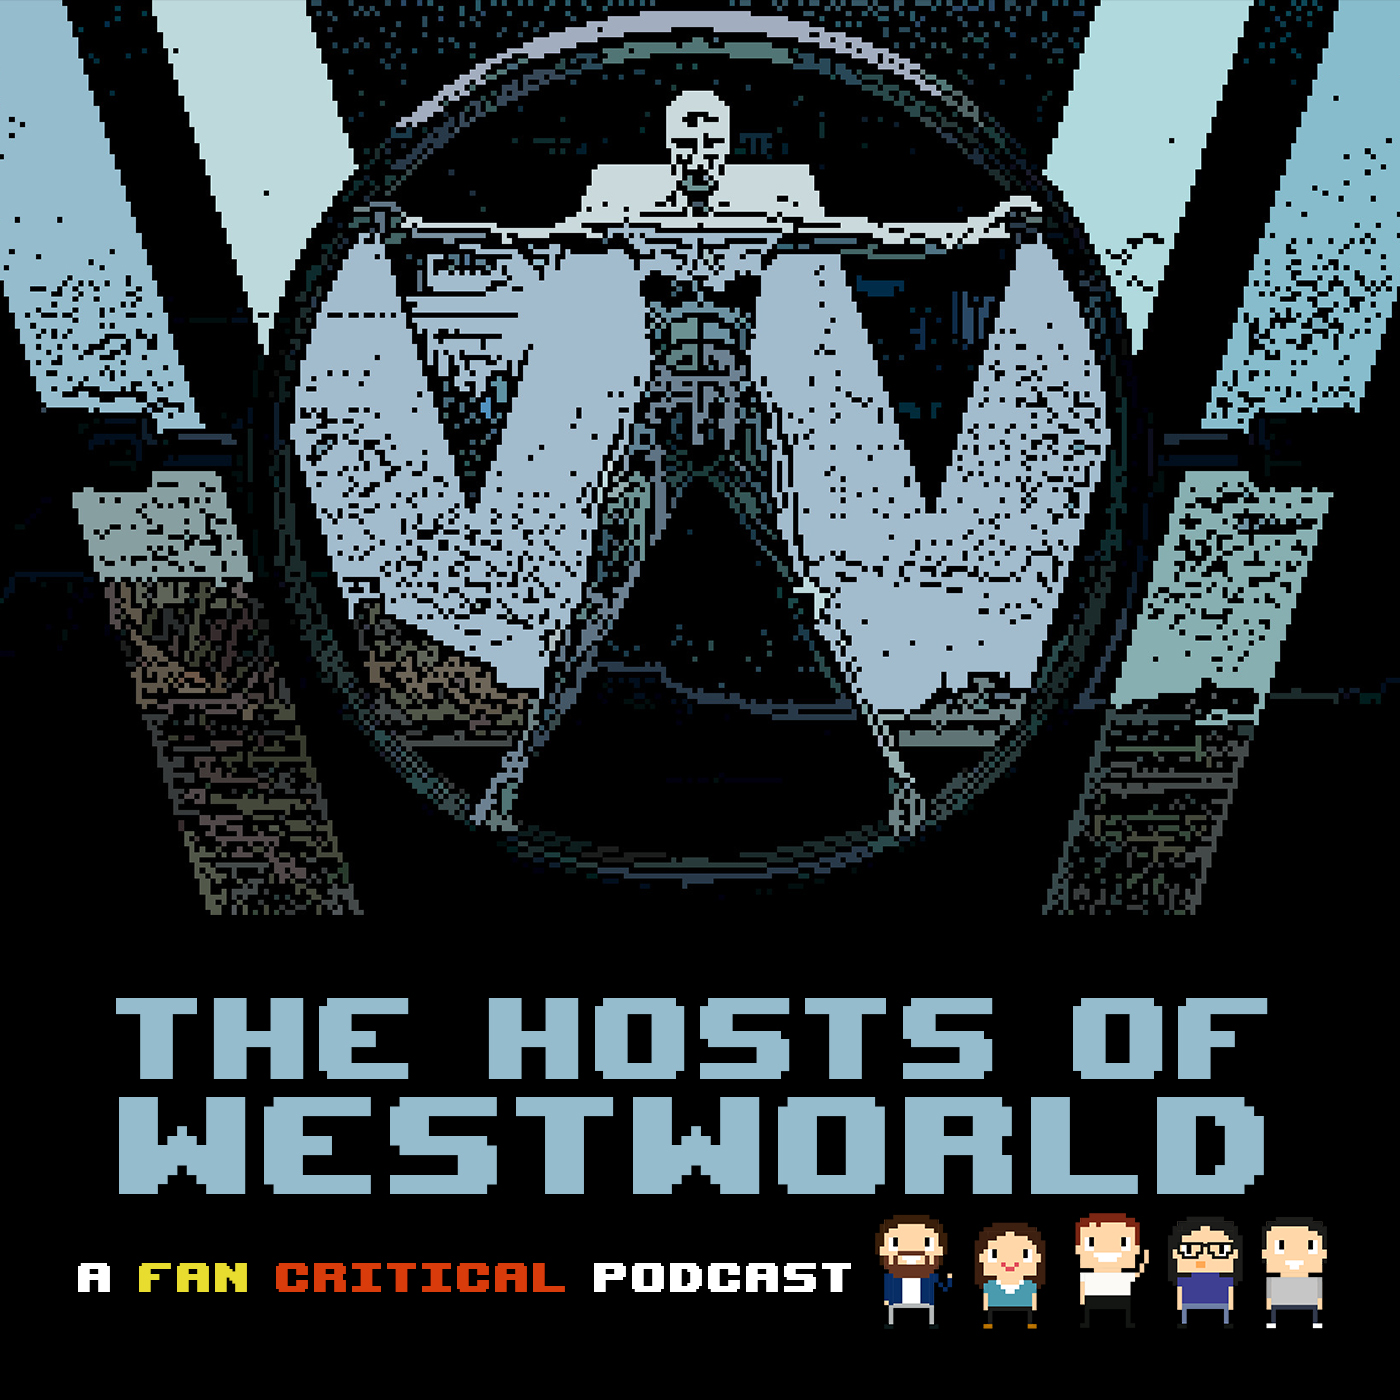 WESTWORLD PODCAST LOGO.jpg